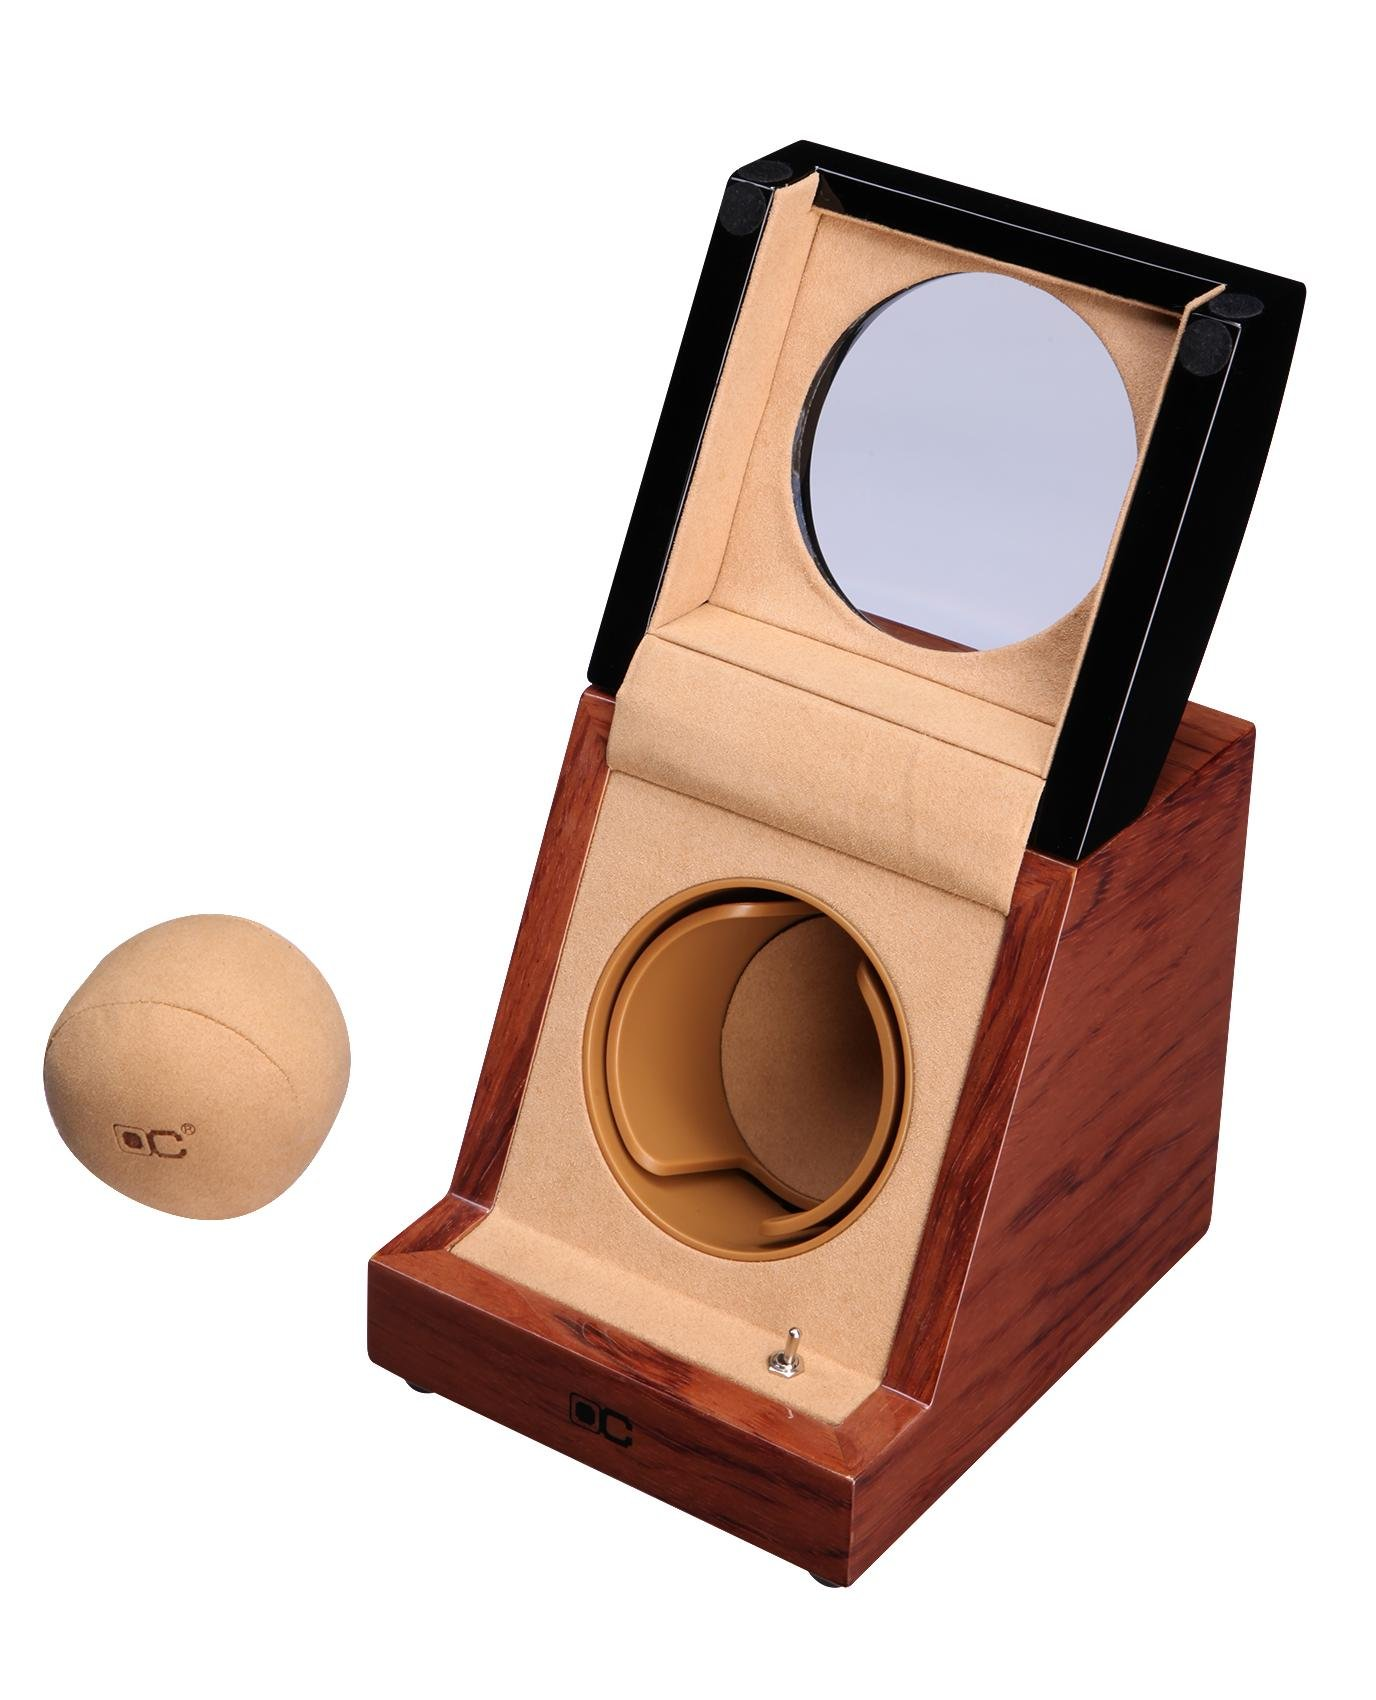 KAIHE-BOX Classic Watch Winders for 1 Watches for automatic Watch Winder Rotator Case Cover Storage H , #1 by KAIHE-BOX (Image #8)